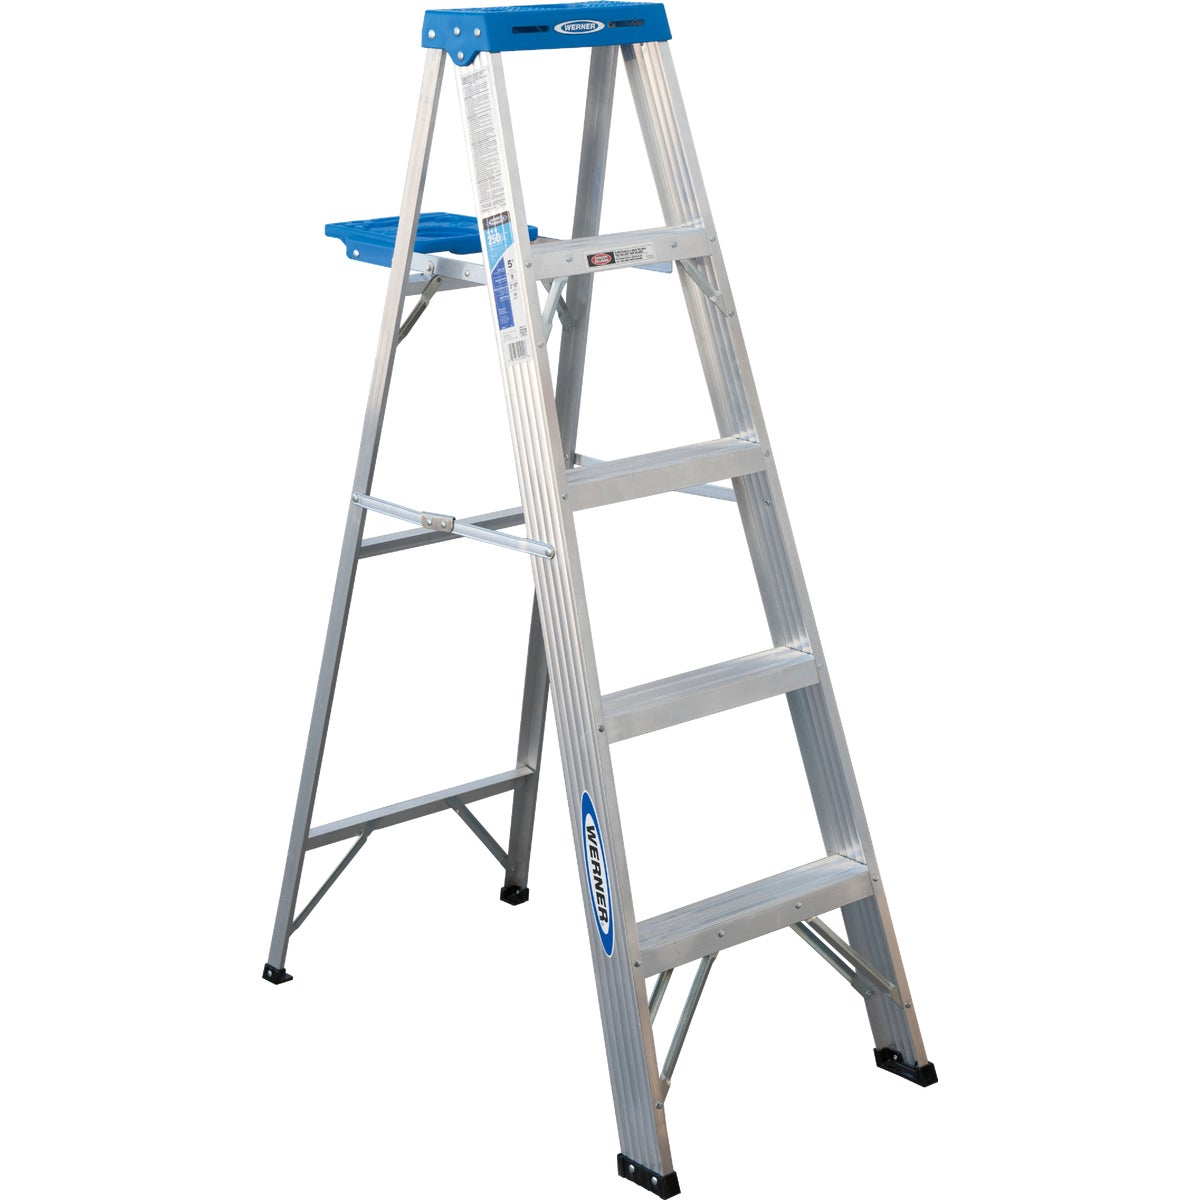 T-1 5' ALUM STEPLADDER - 365 by Werner Ladder